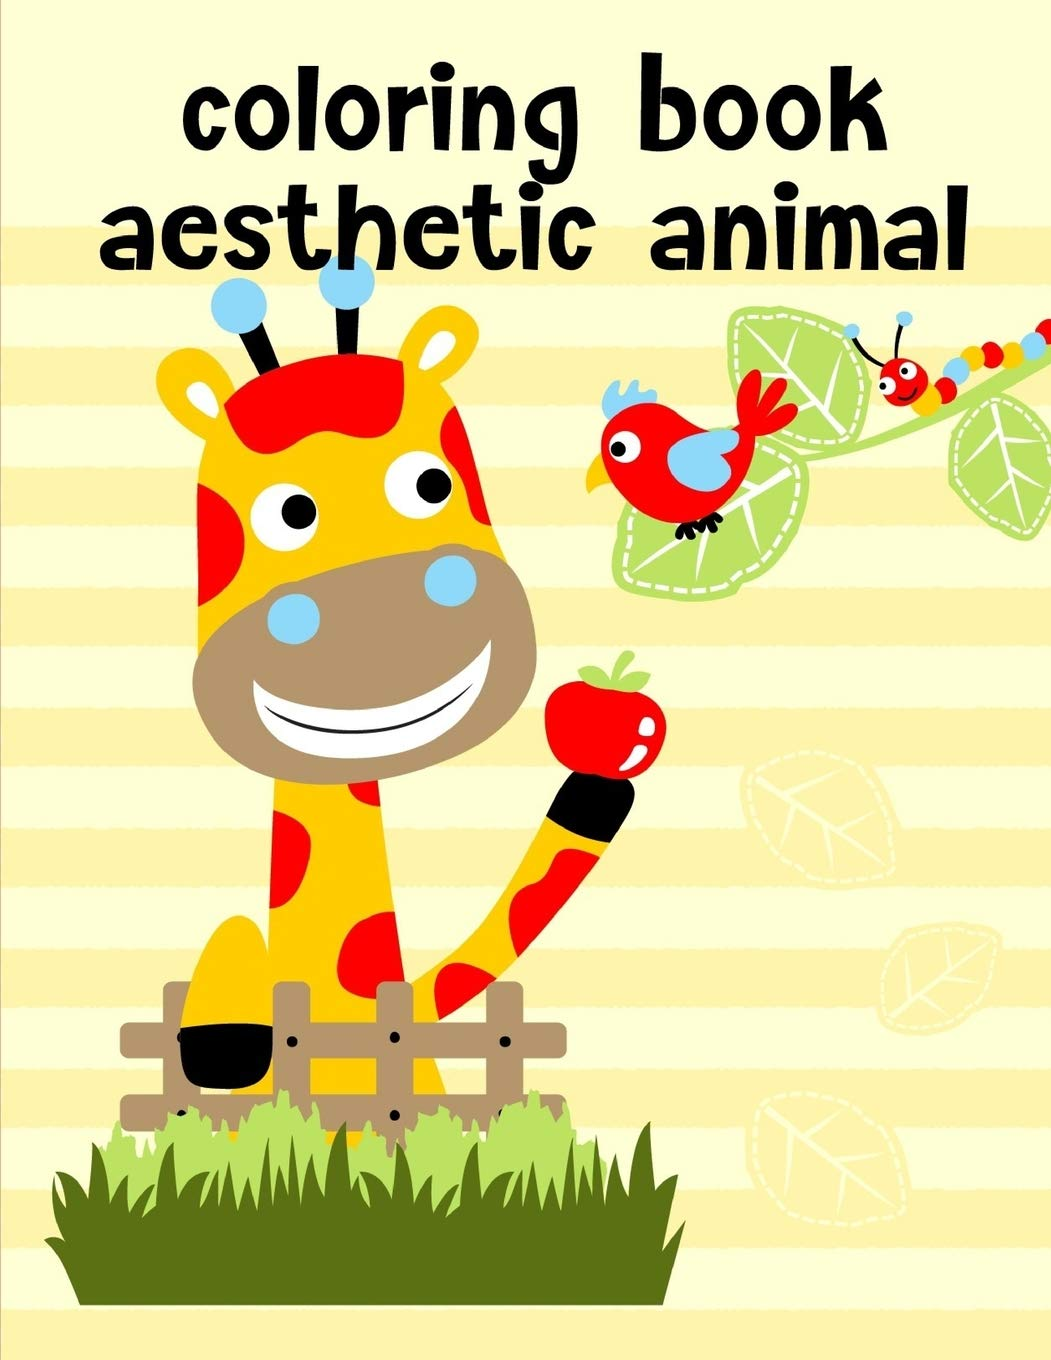 Amazon Com Coloring Book Aesthetic Animal Christmas Coloring Pages For Boys Girls Toddlers Fun Early Learning Animals Comics 9781679029905 Color Creative Books